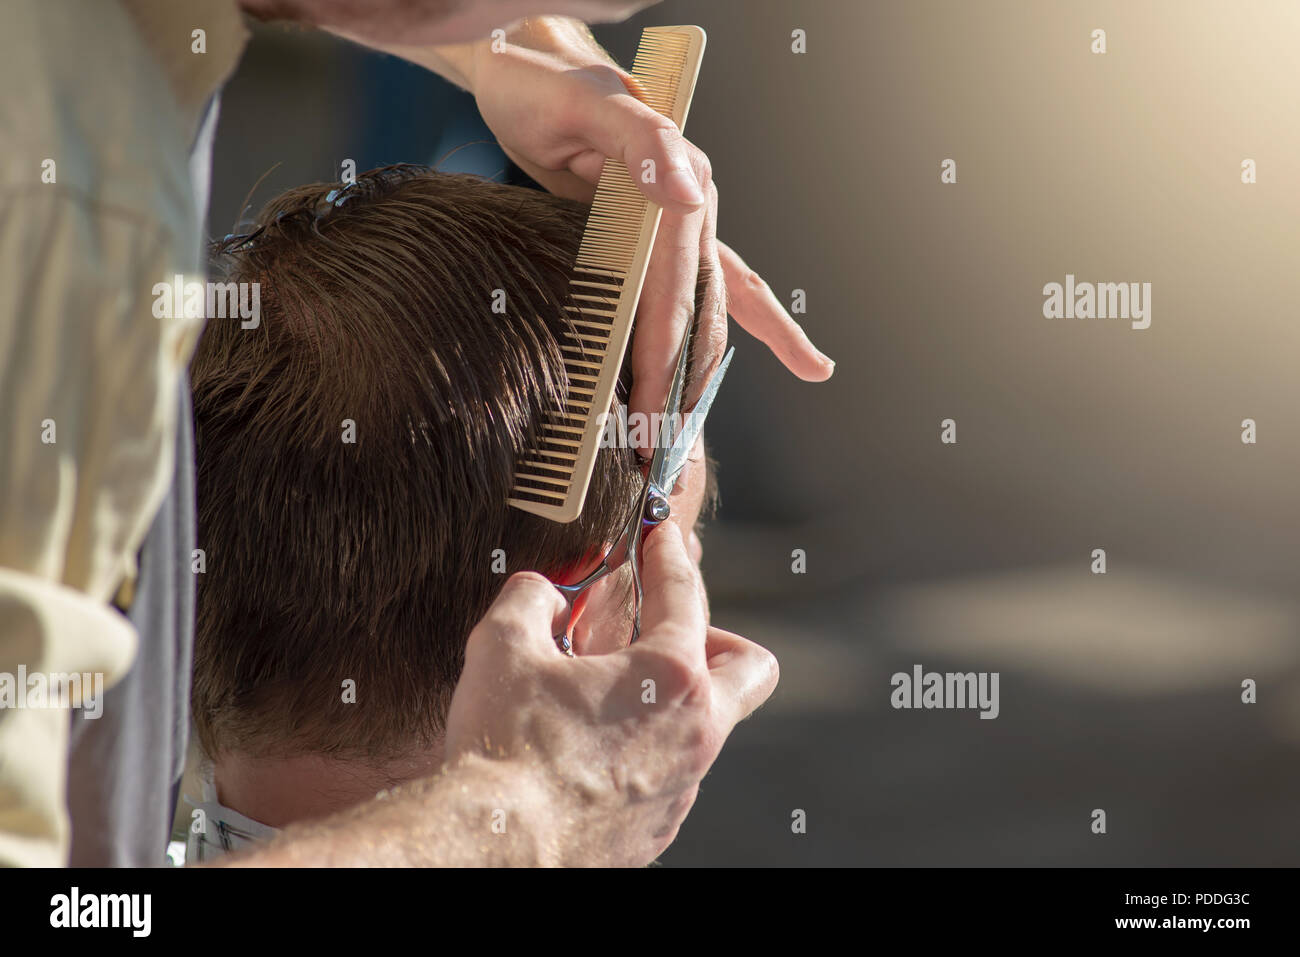 Hands of a hairdresser close-up of scissors and a comb. The barber is cutting a man and doing a haircut. Horizontal photo with text place - Stock Image